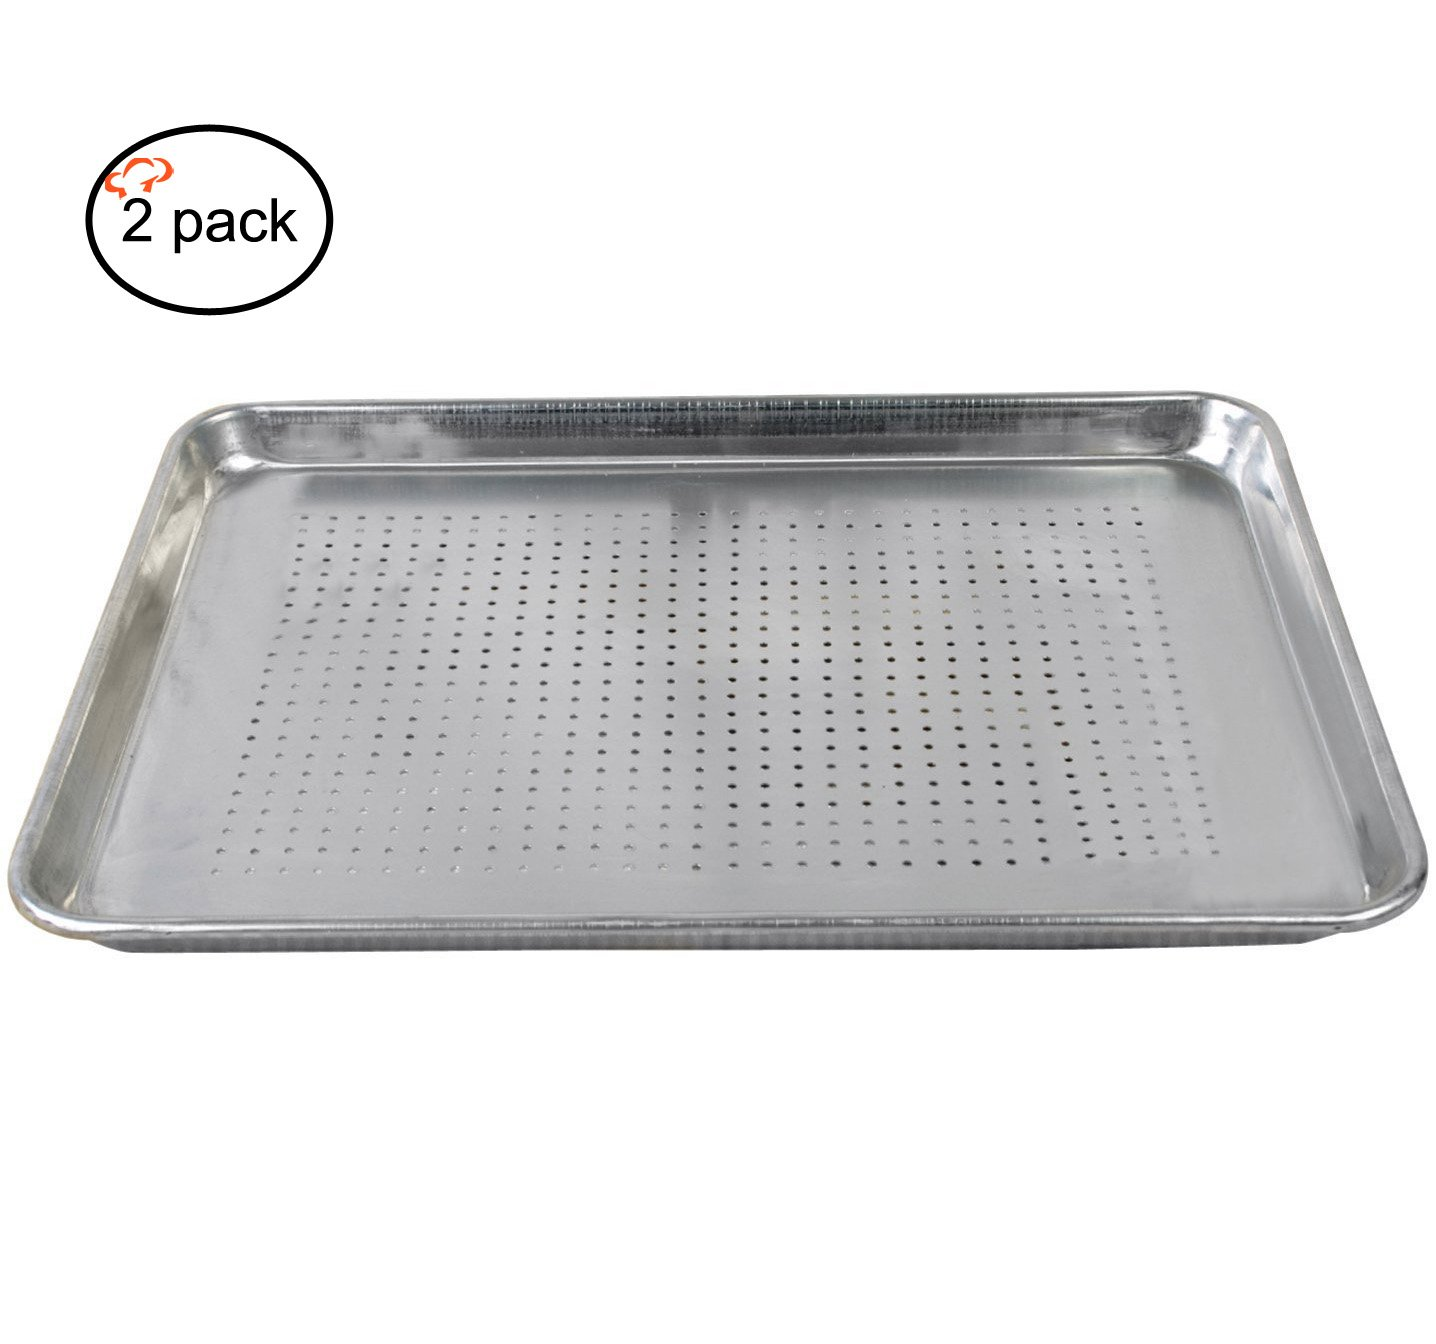 Tiger Chef Full Size Aluminum Sheet Pan - Commercial Bakery Equipment Cake Pans - NSF Approved 2 Pack (2, 18'' x 26'' Full Size Perforated)